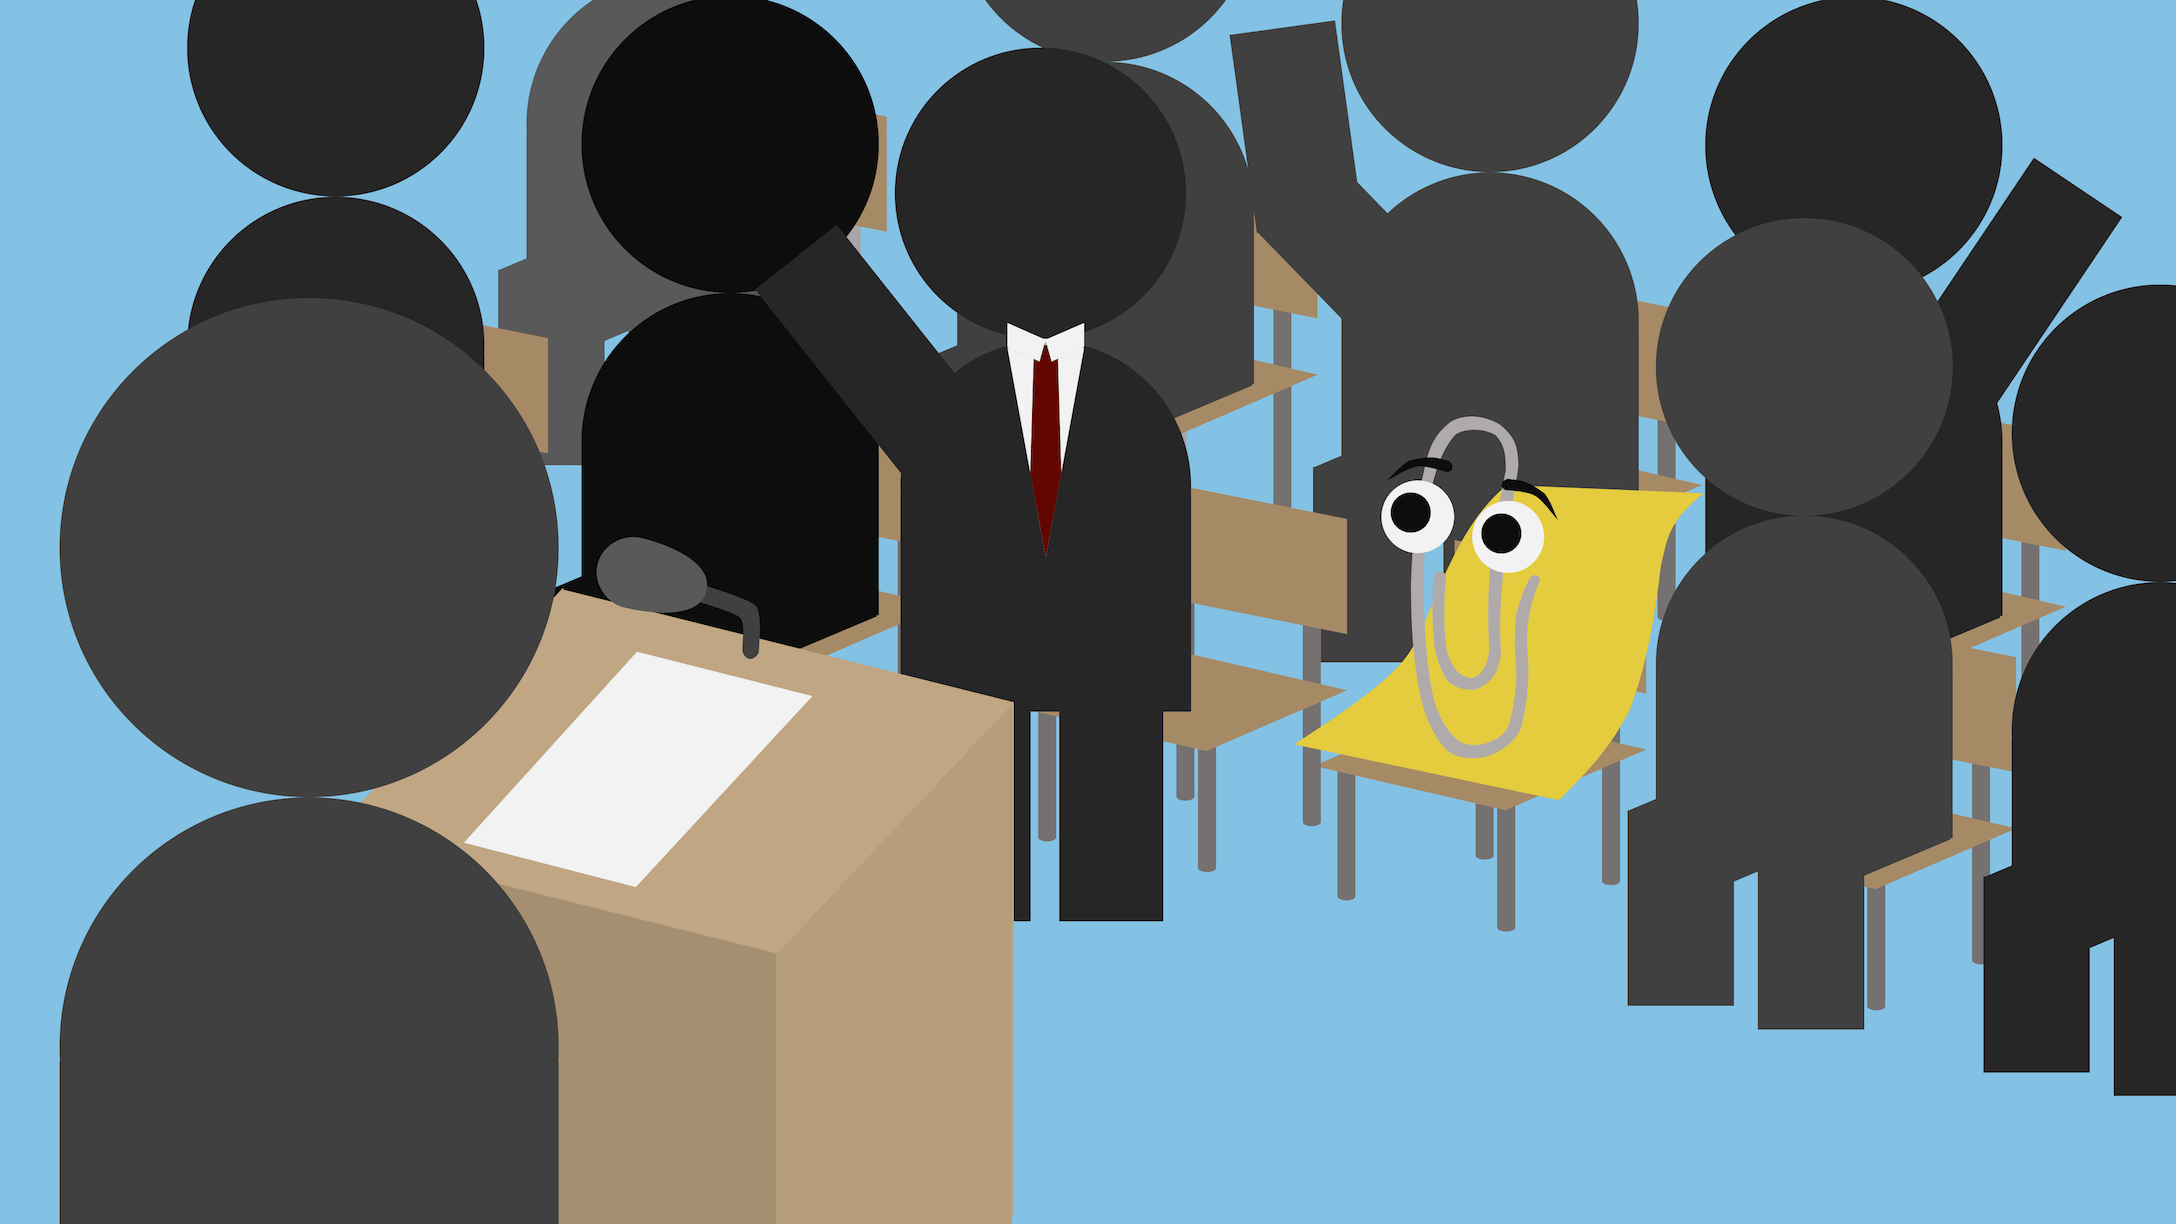 Clippy attends a press conference